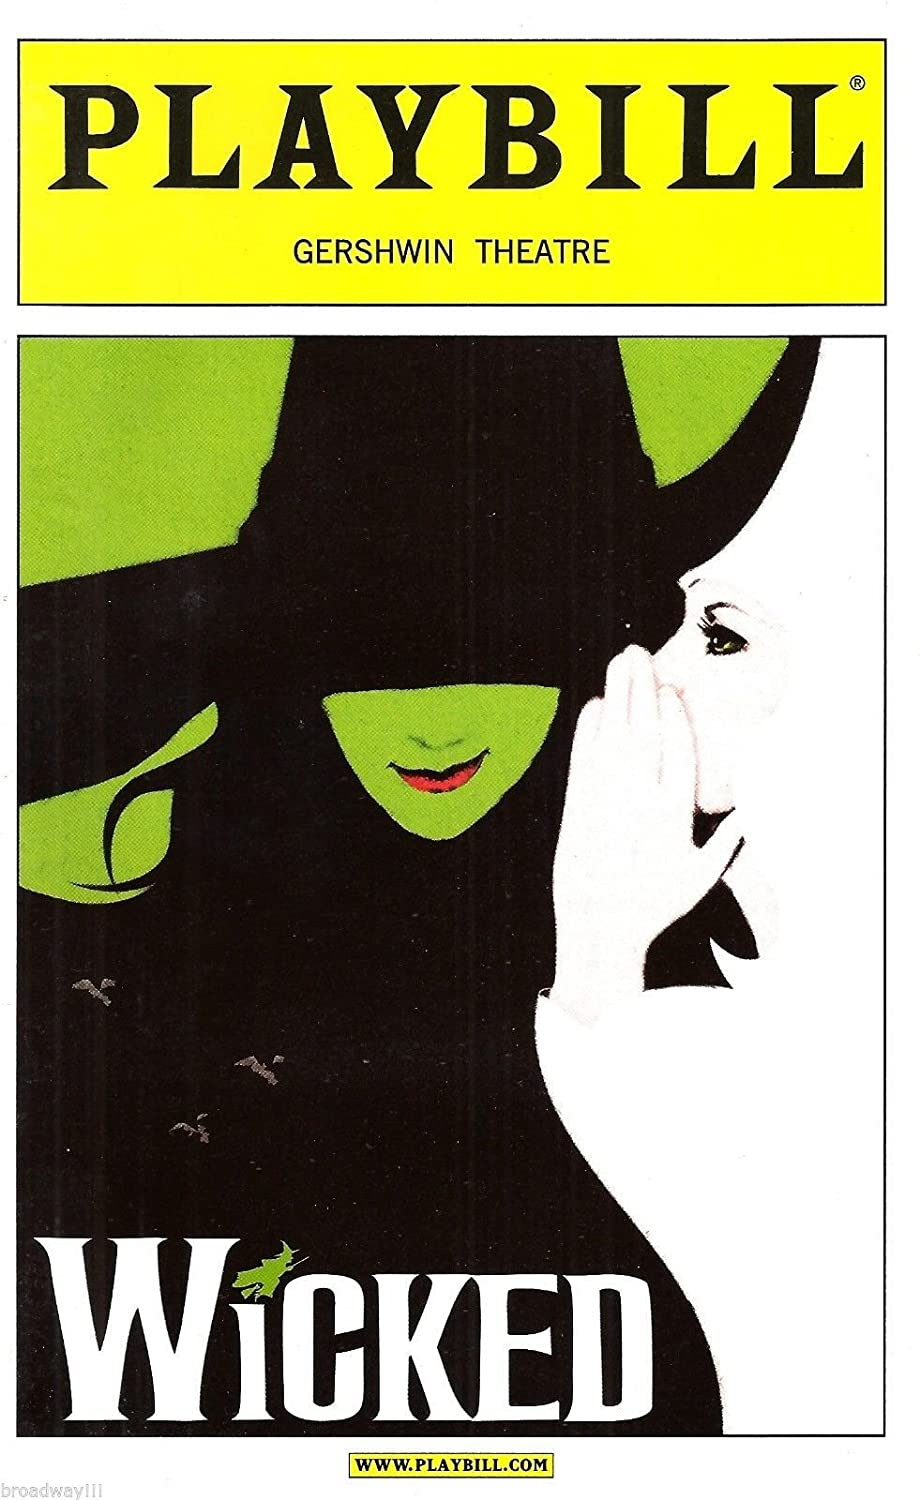 Kristin Chenoweth 'WICKED' Idina Menzel / Joel Grey / Stephen Schwartz 2004 Broadway Playbill